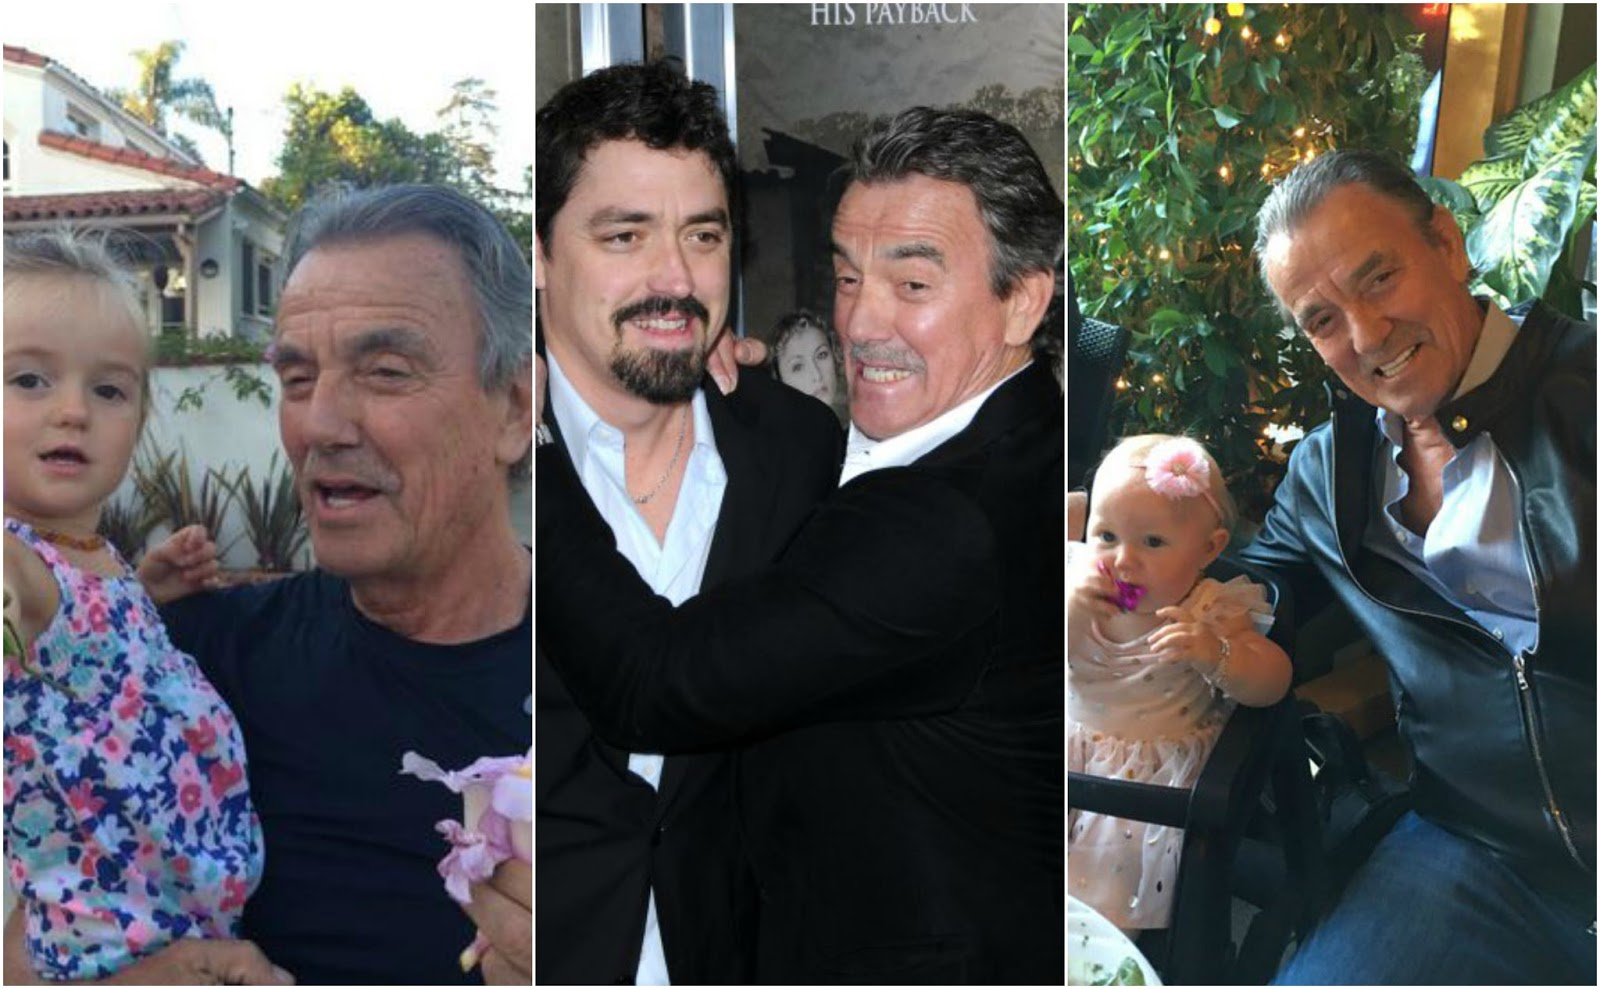 A Look At The Young And The Restless Eric Braeden S Life As A Father Soap Opera News Dale russell gudegast is an actress and writer best known as the loyal wife of the young & restless actor, eric braeden. a look at the young and the restless